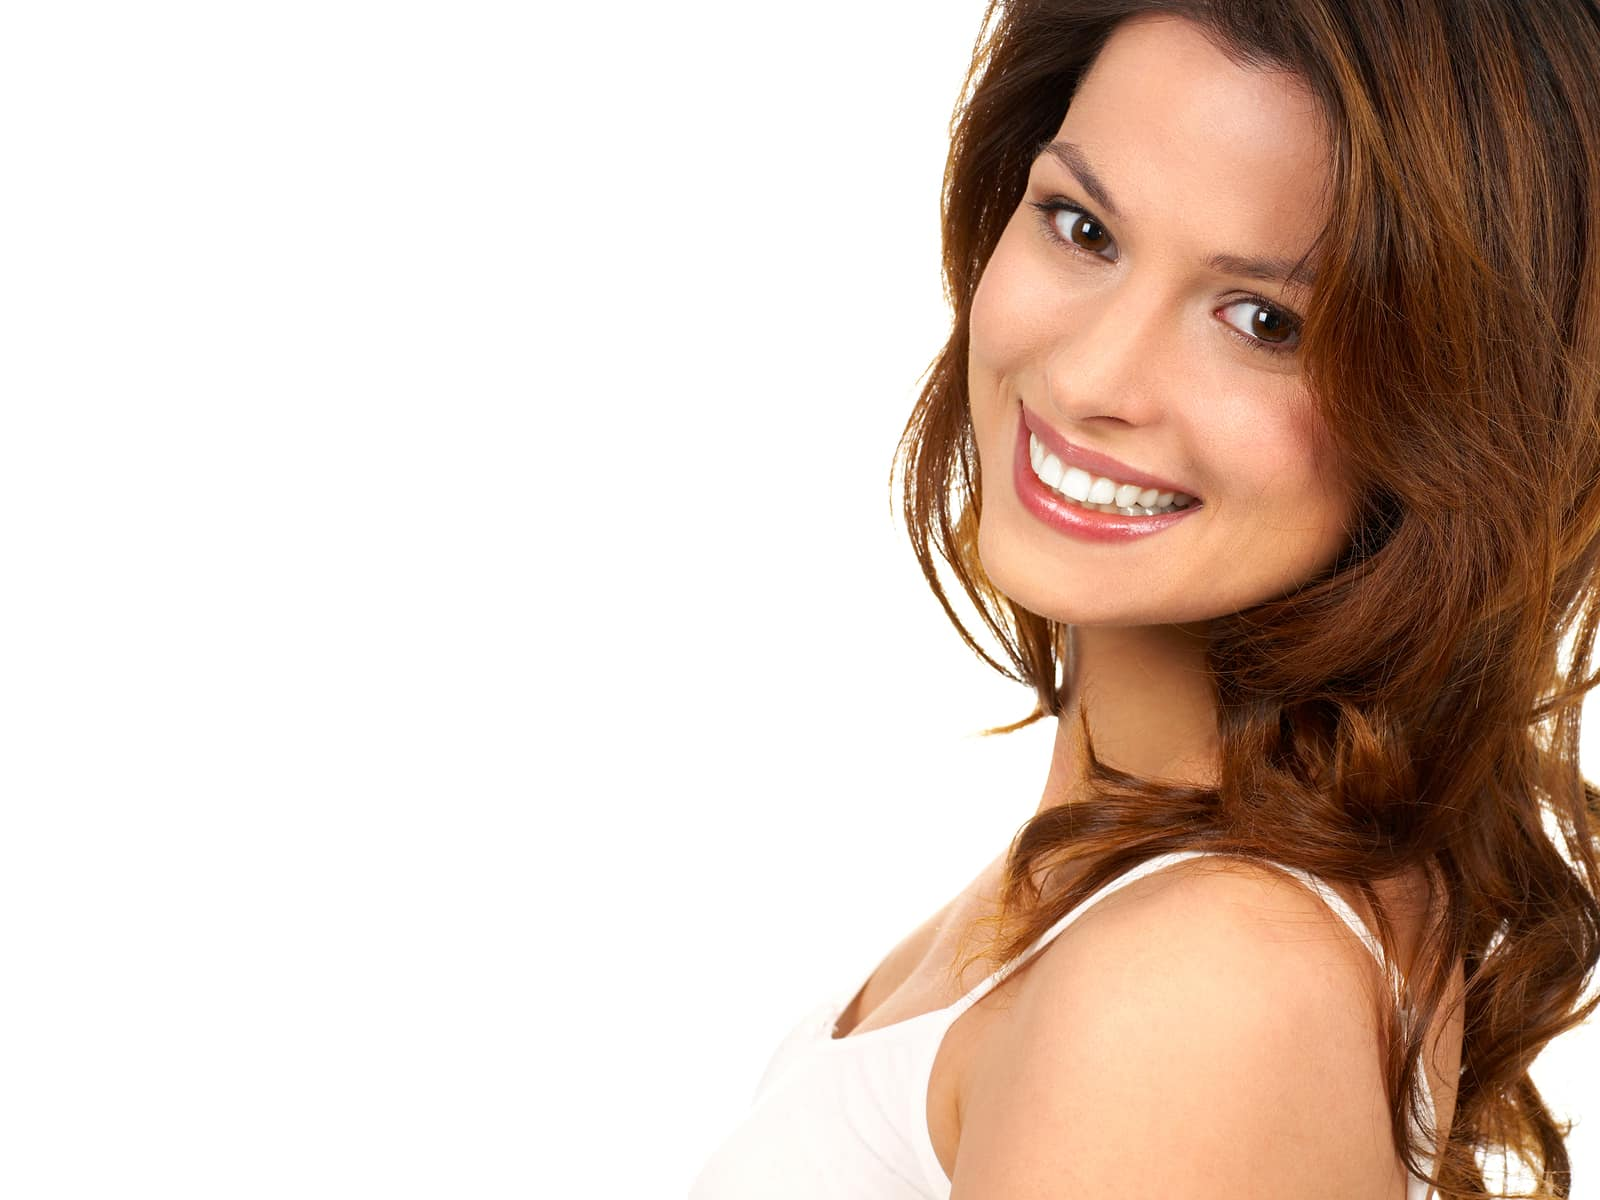 Teeth Whitening Services in Lee's Summit